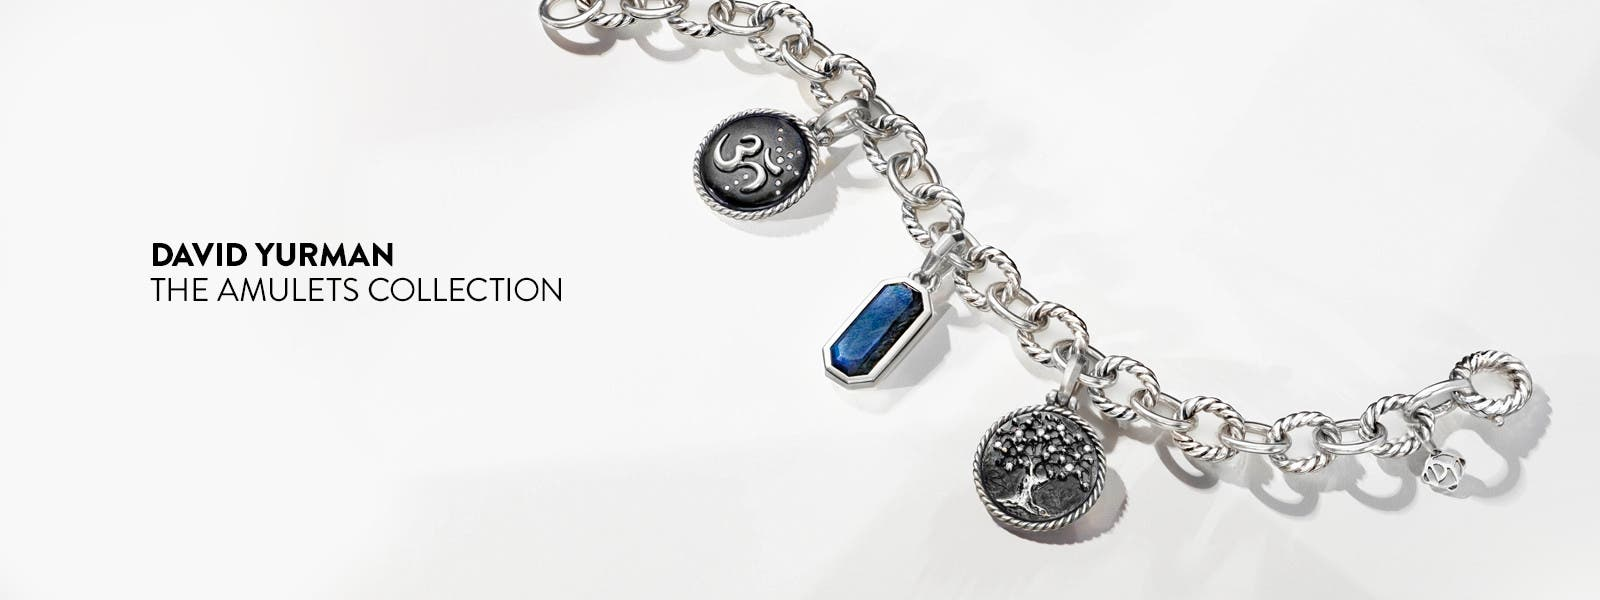 David Yurman The Amulets Collection.